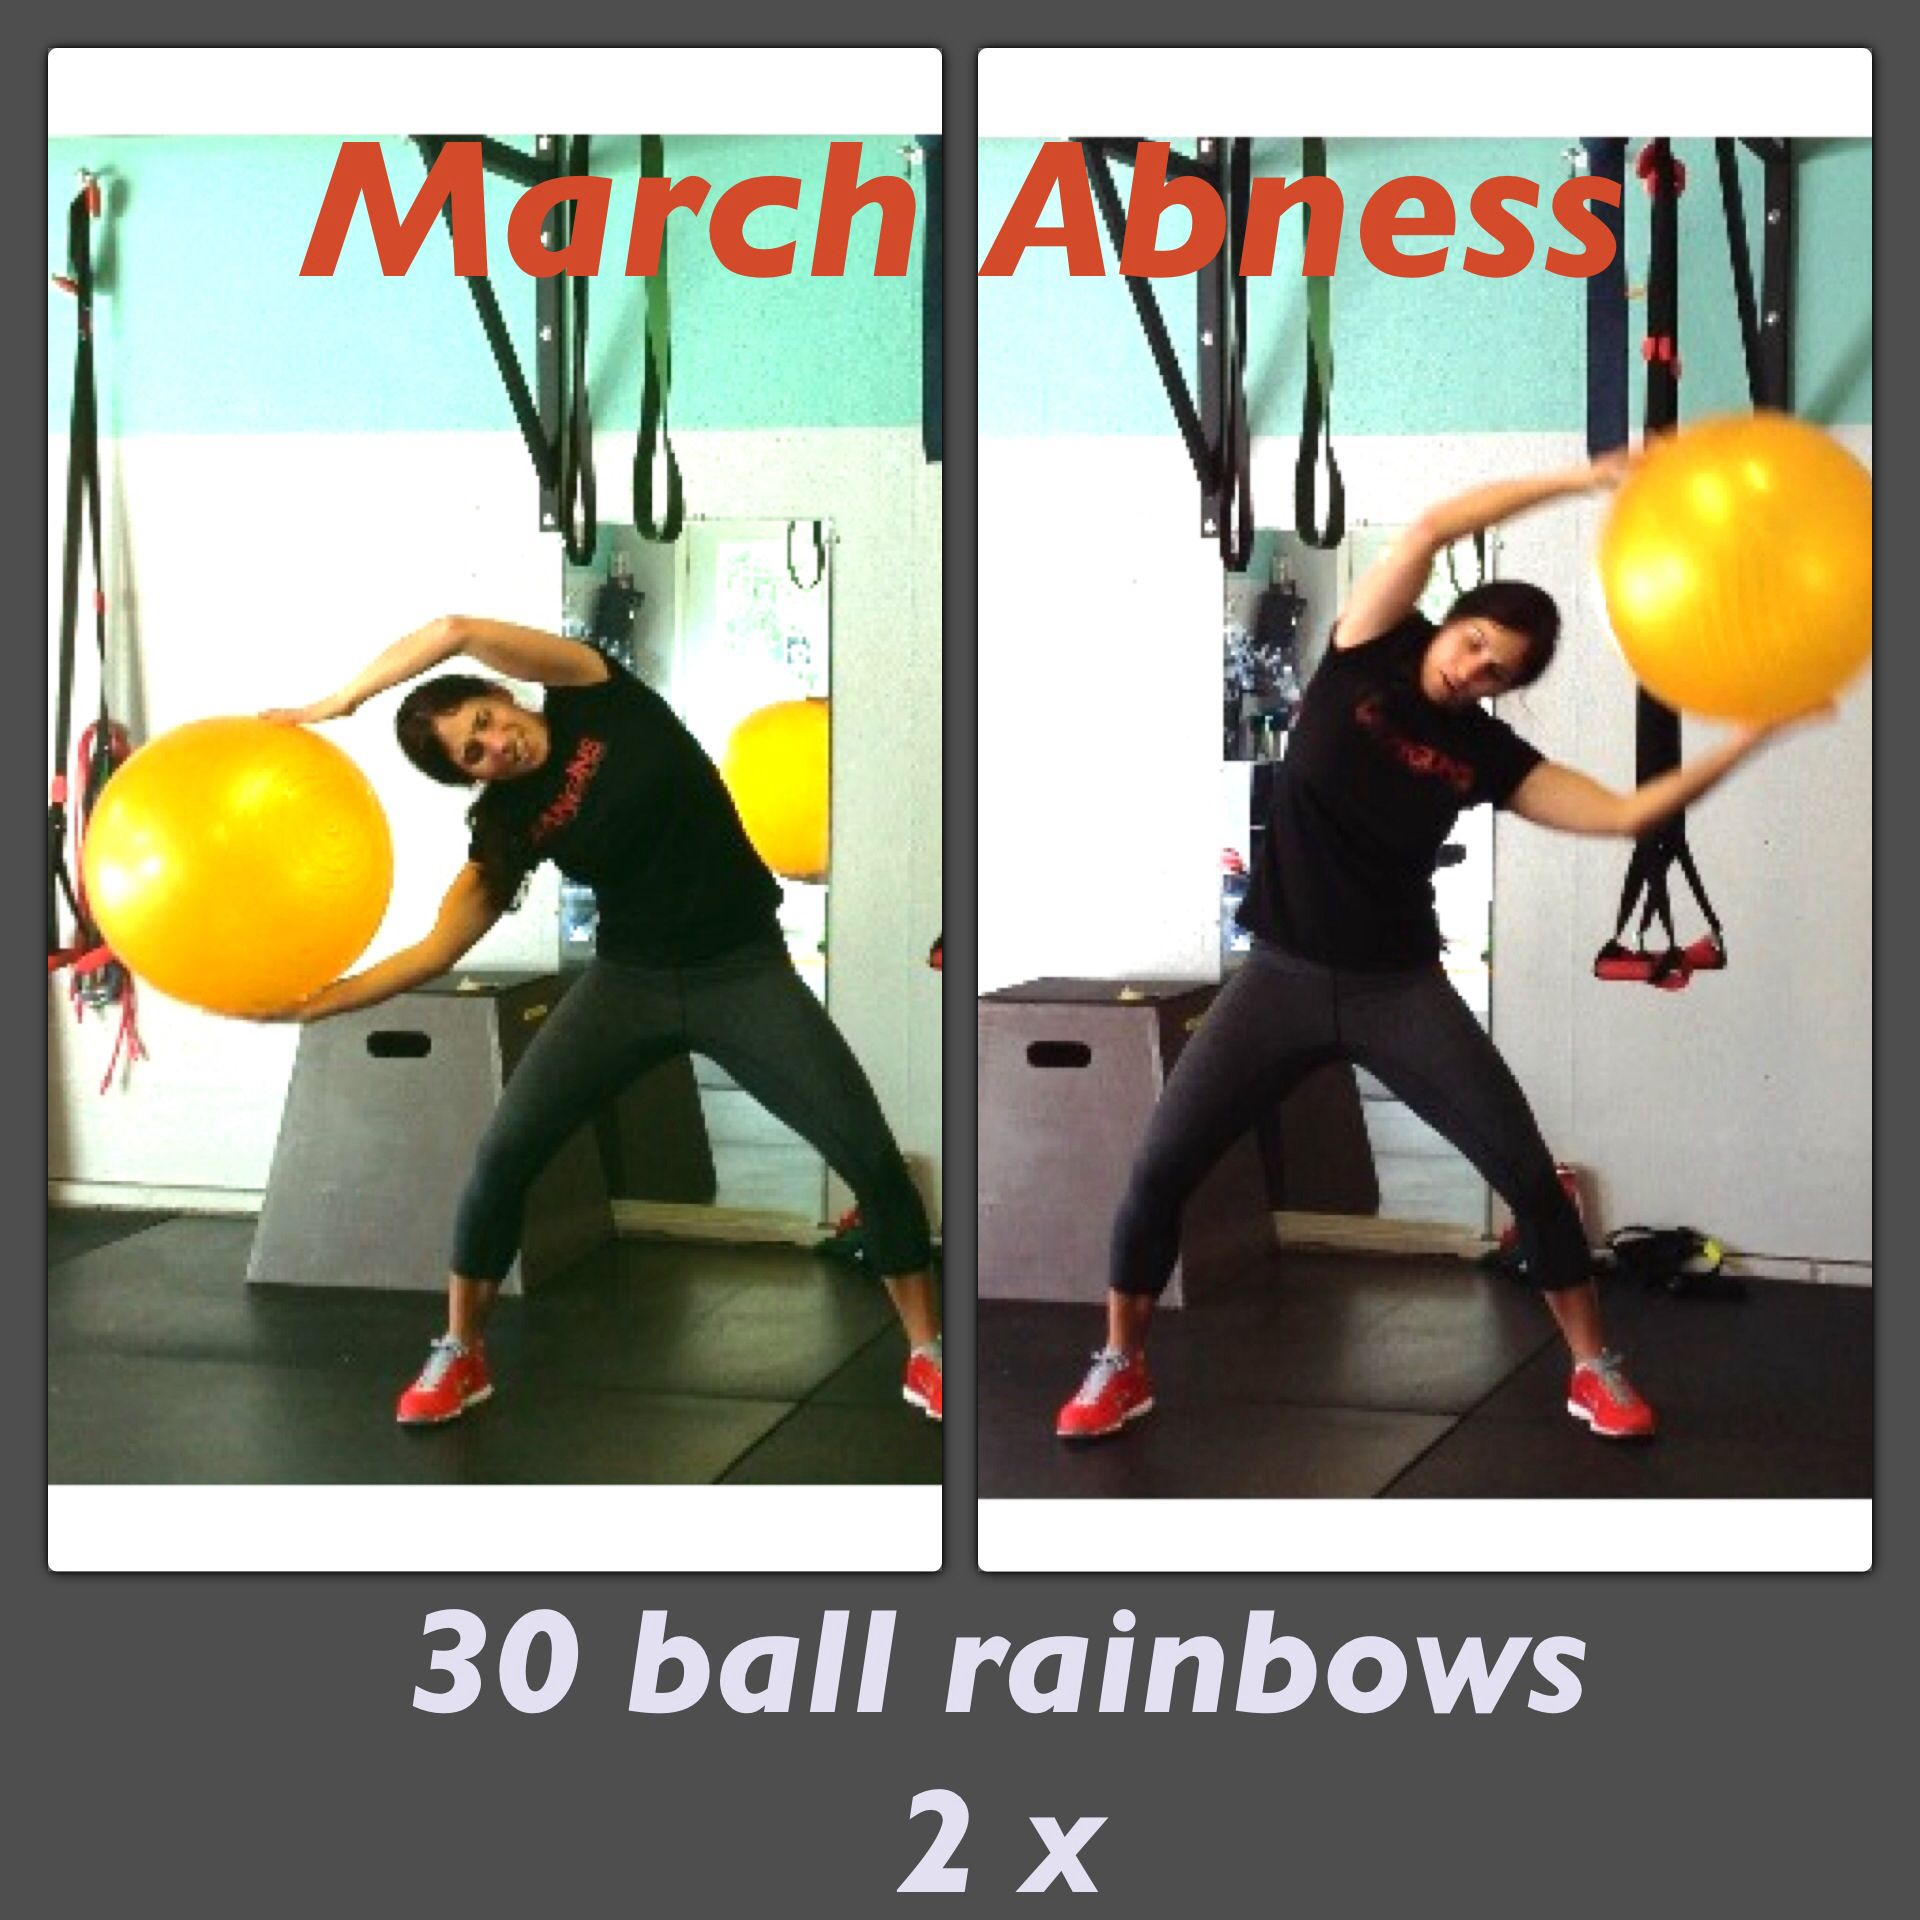 March Abness : for all exercises go to www.leanguns.com